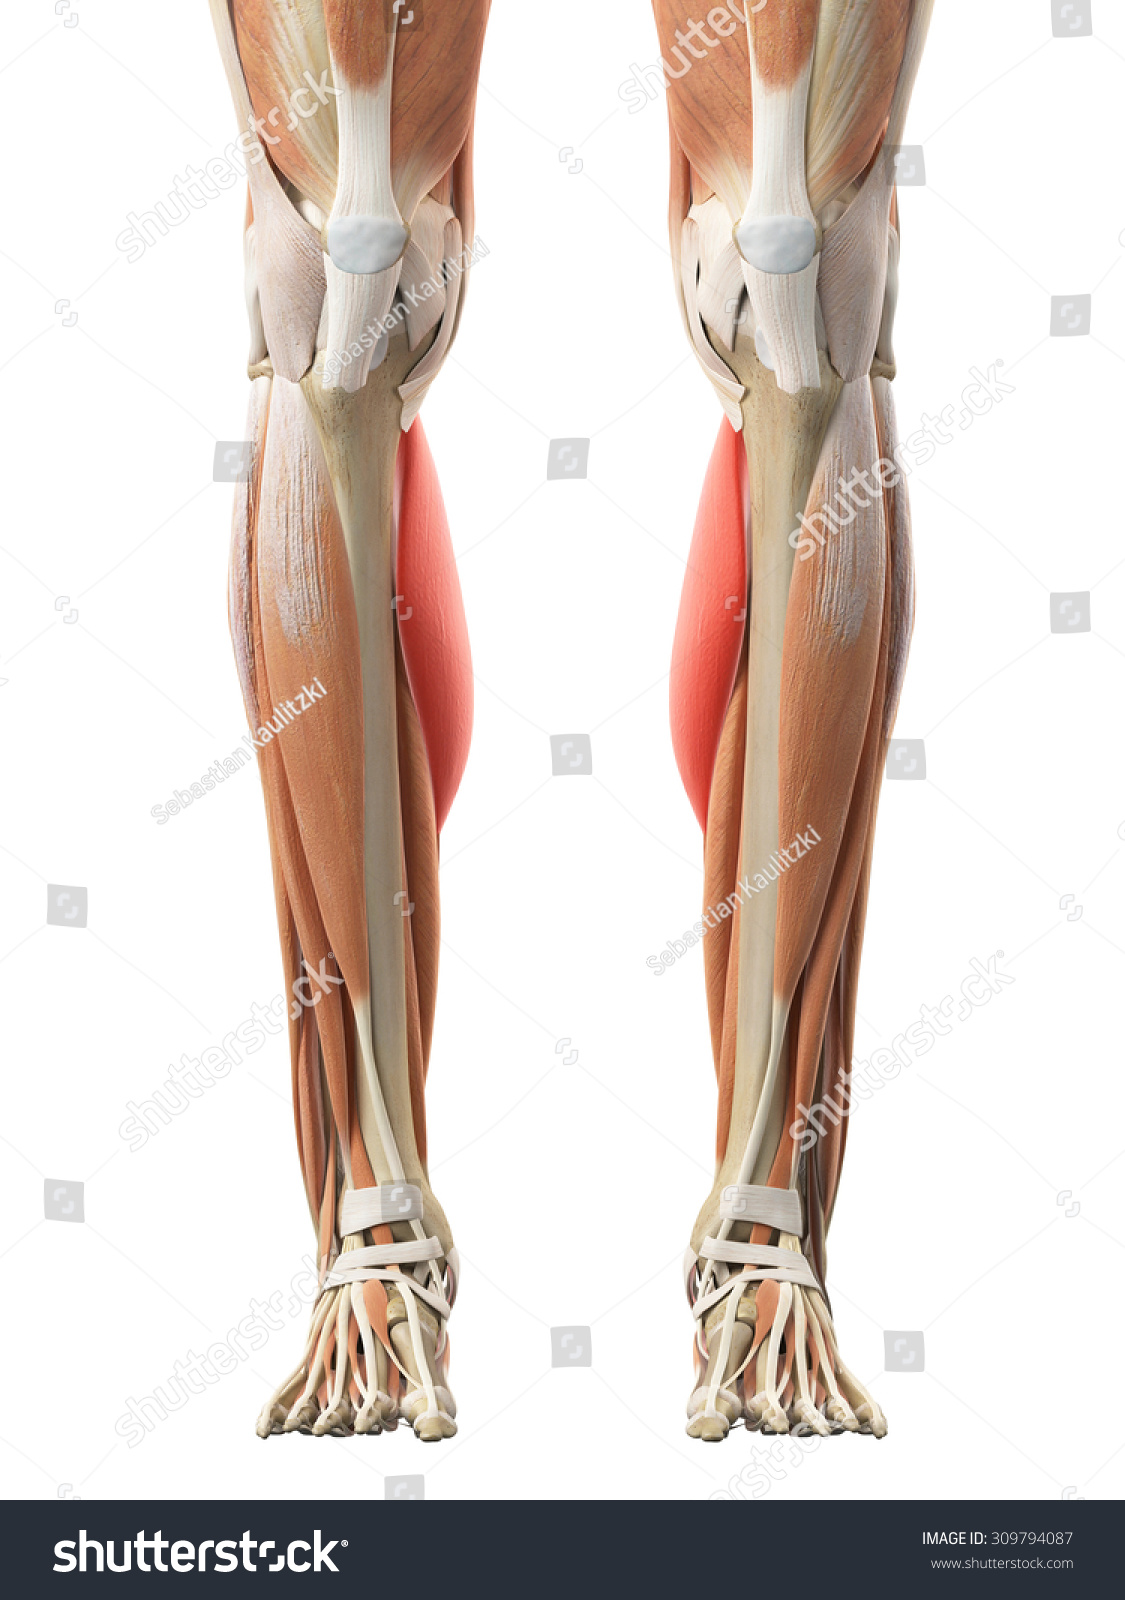 Medically Accurate Illustration Gastrocnemius Medial Head Stock